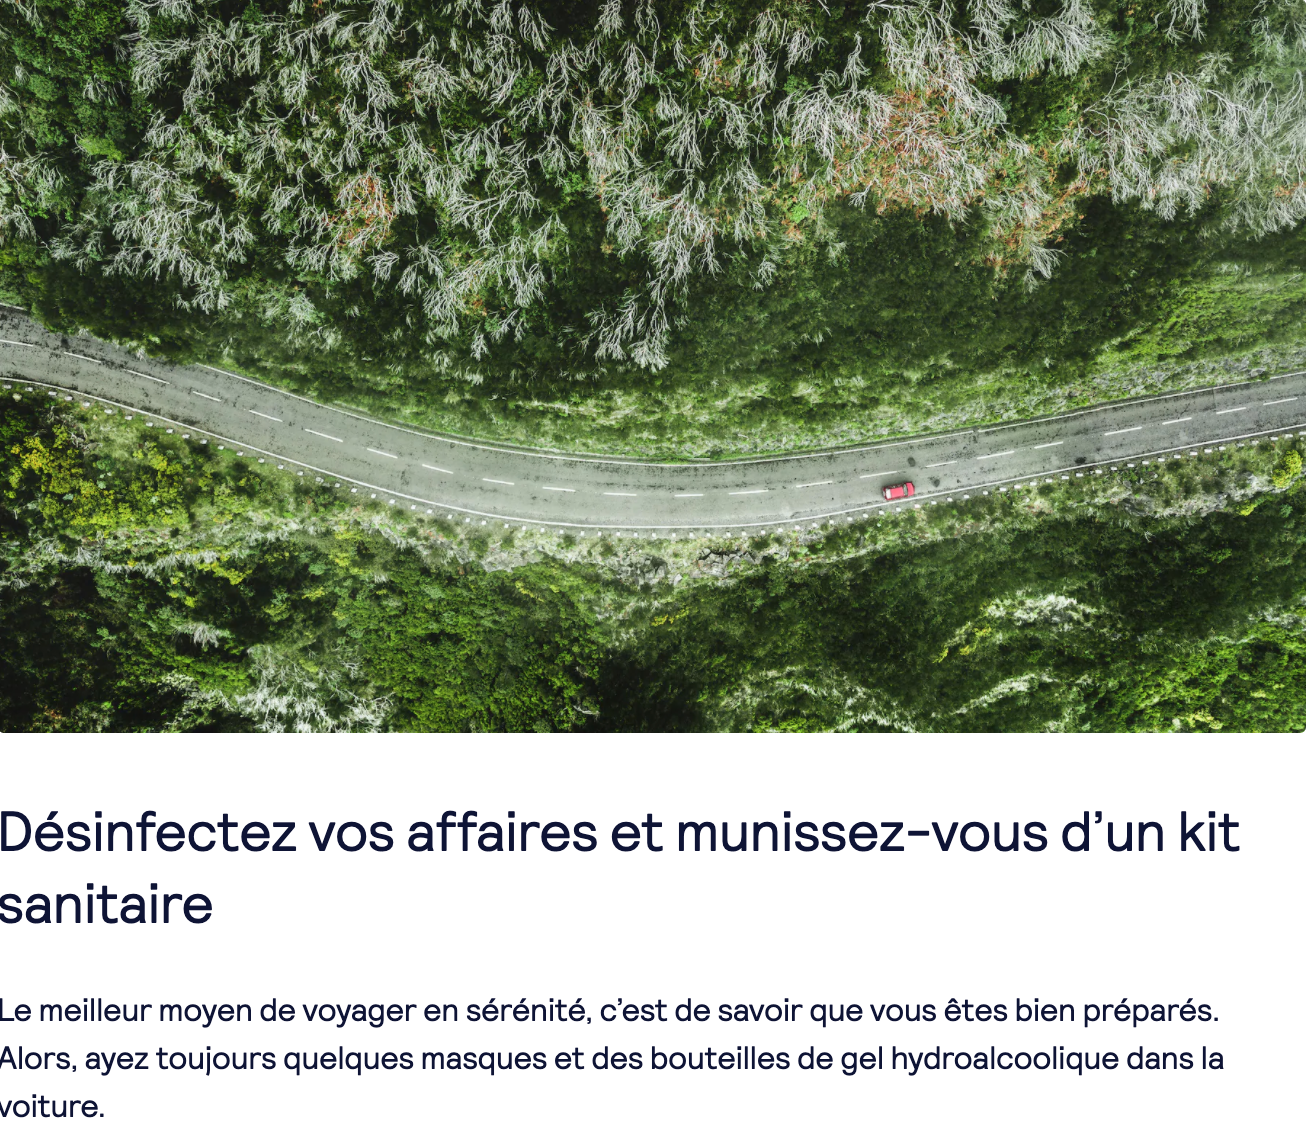 Road trip advice during Covid-19